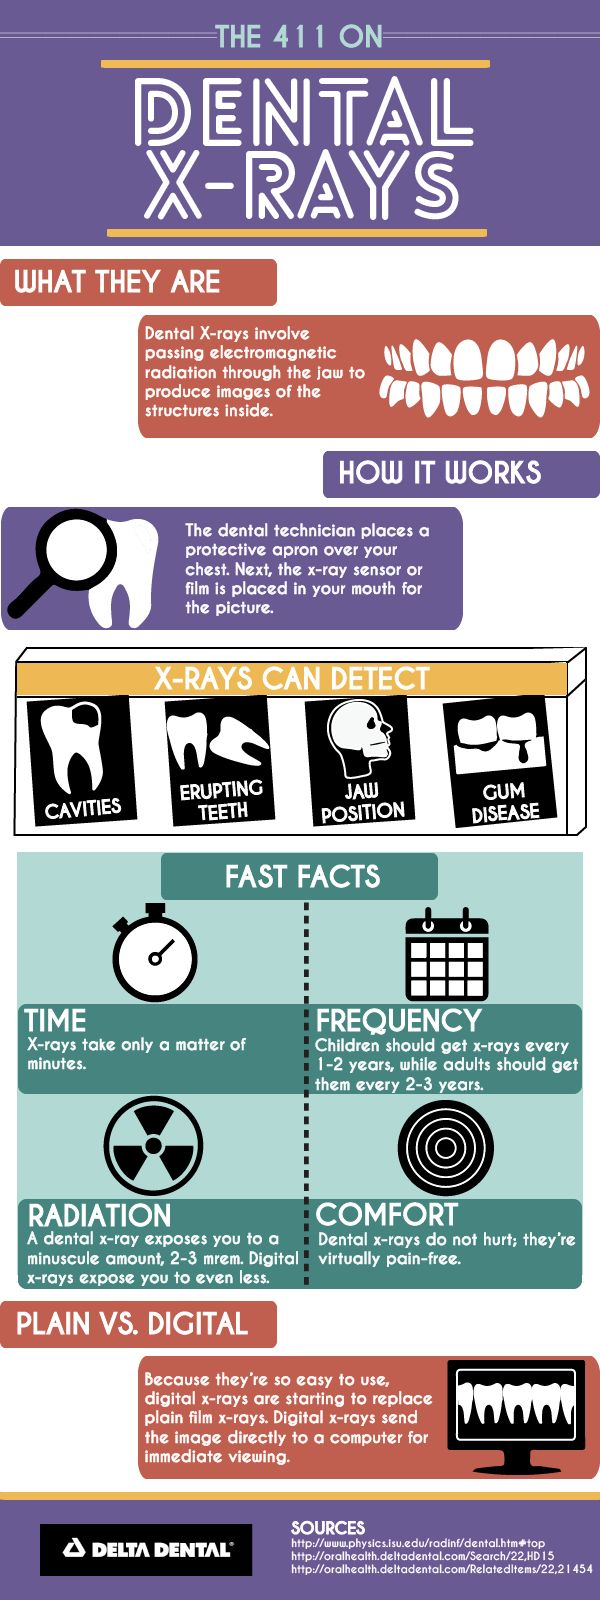 X-rays are the dentists handy tool in the fight against cavities, fractures and gum disease! #deltadental